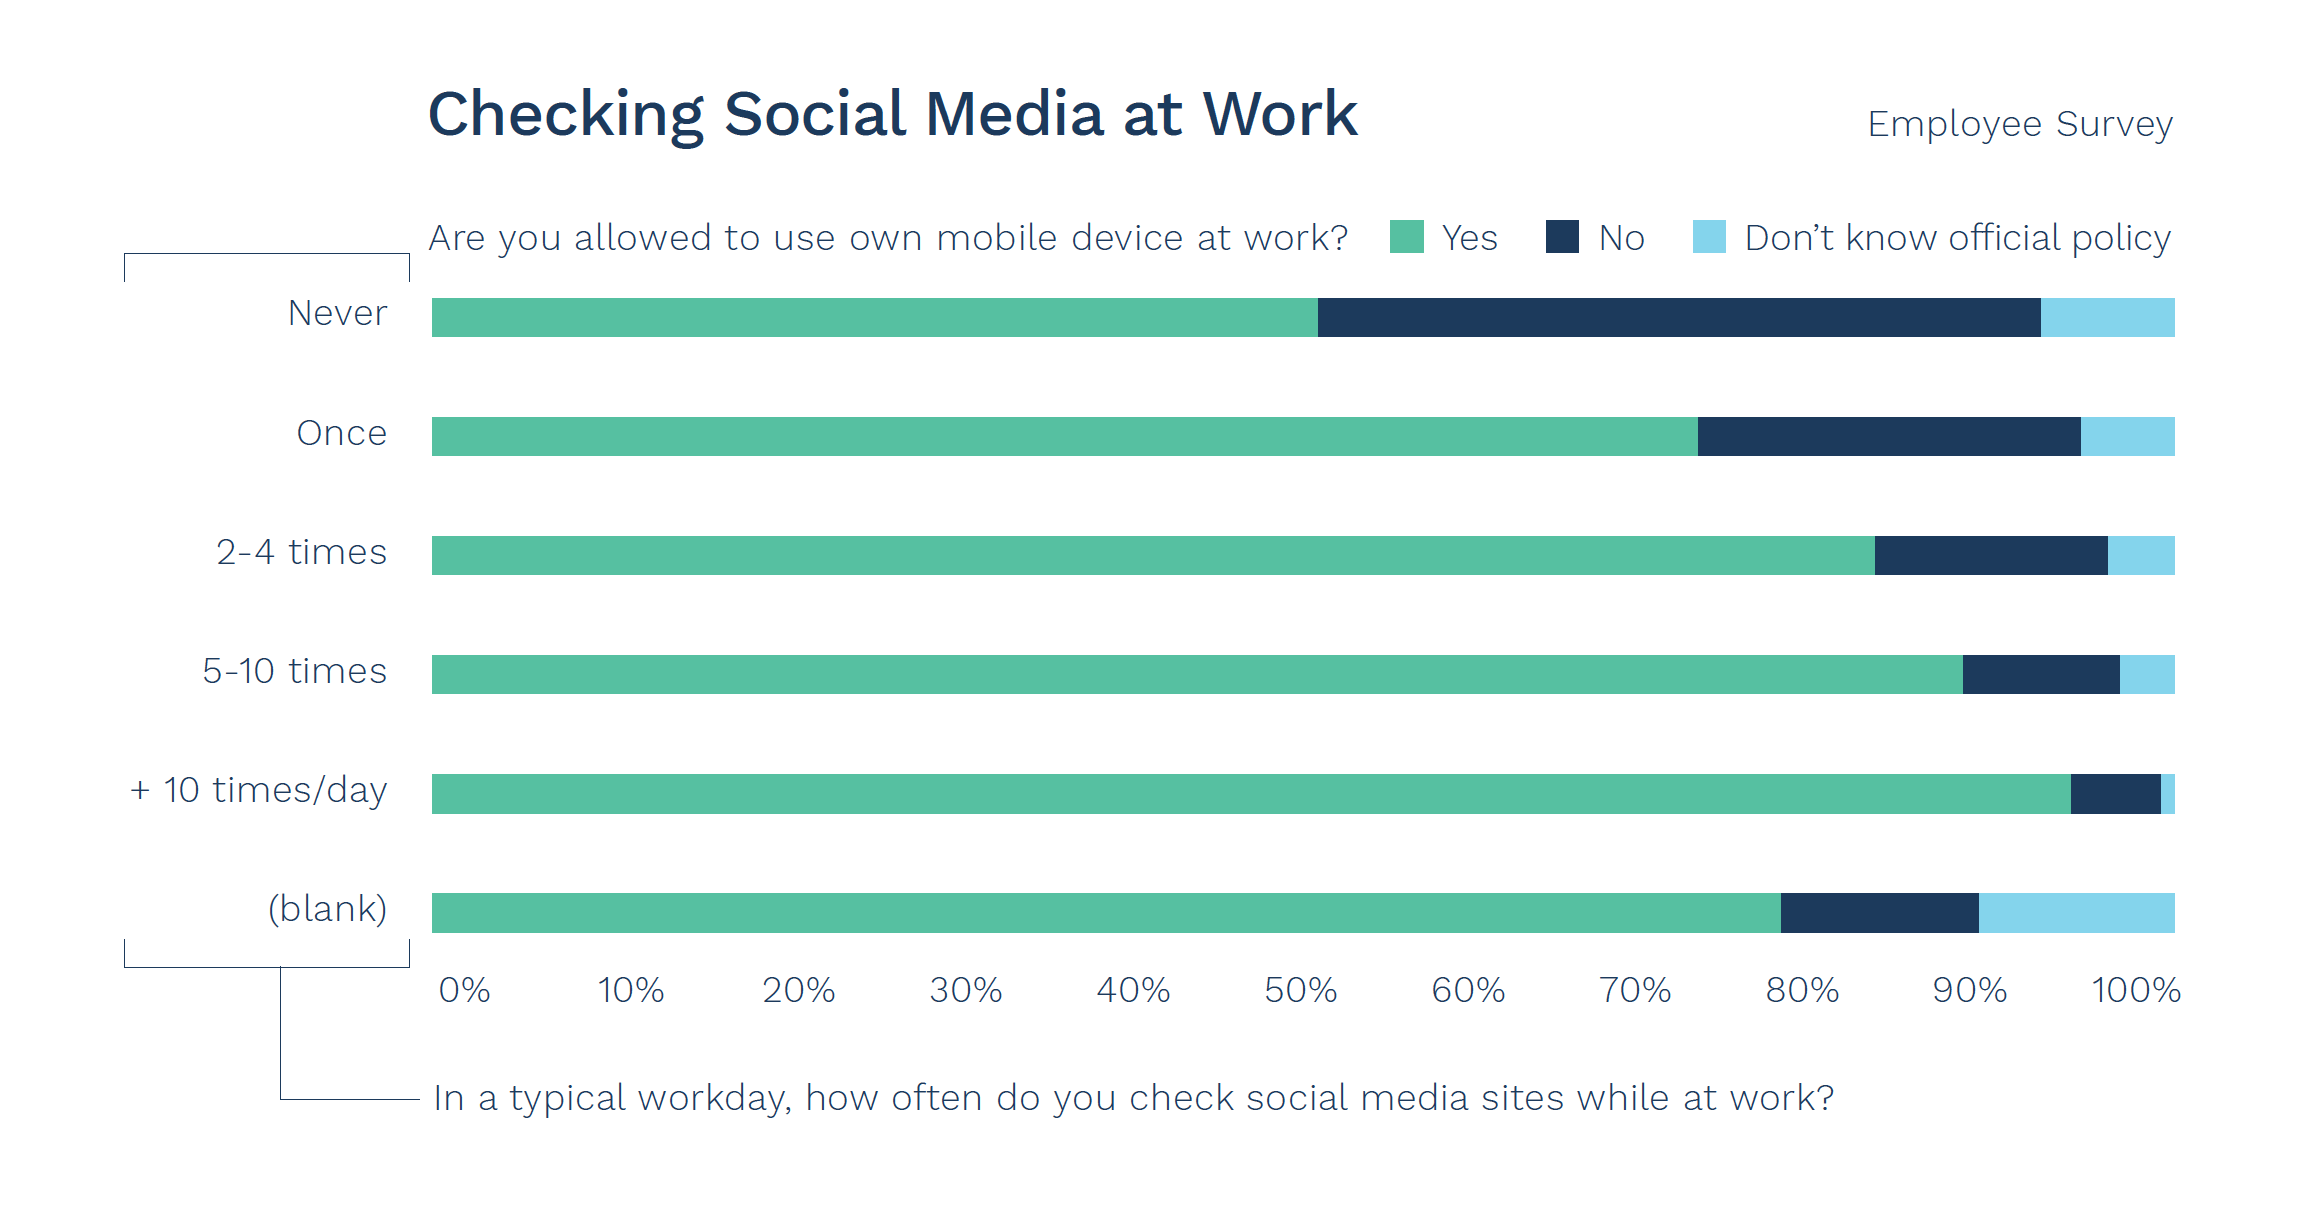 checking-social-media-at-work-graph